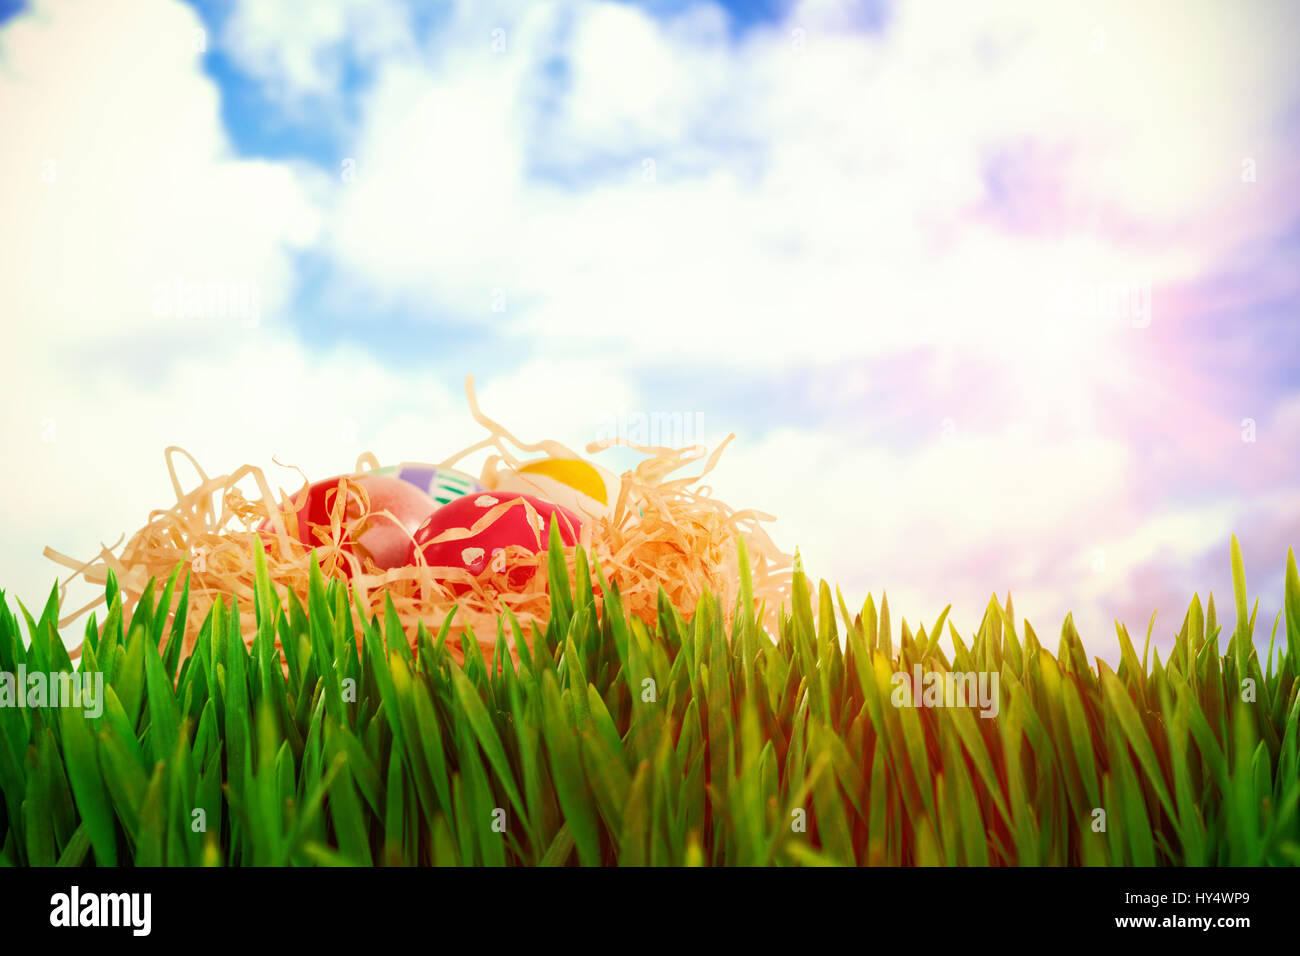 Grass growing outdoors against blue sky with white clouds Stock Photo